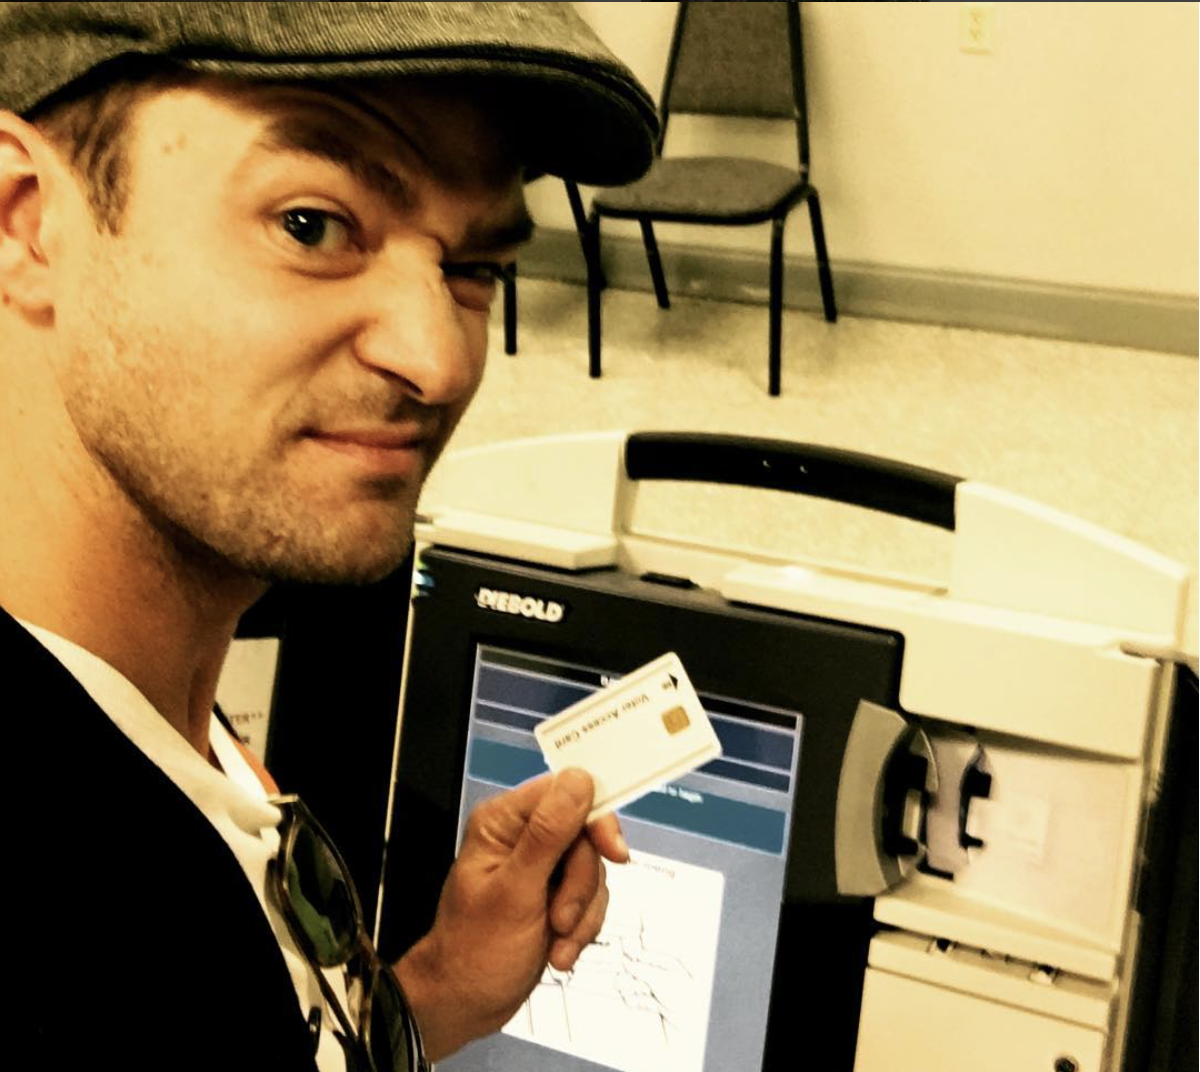 Could Justin Timberlake be JAILED for posting voting selfie?